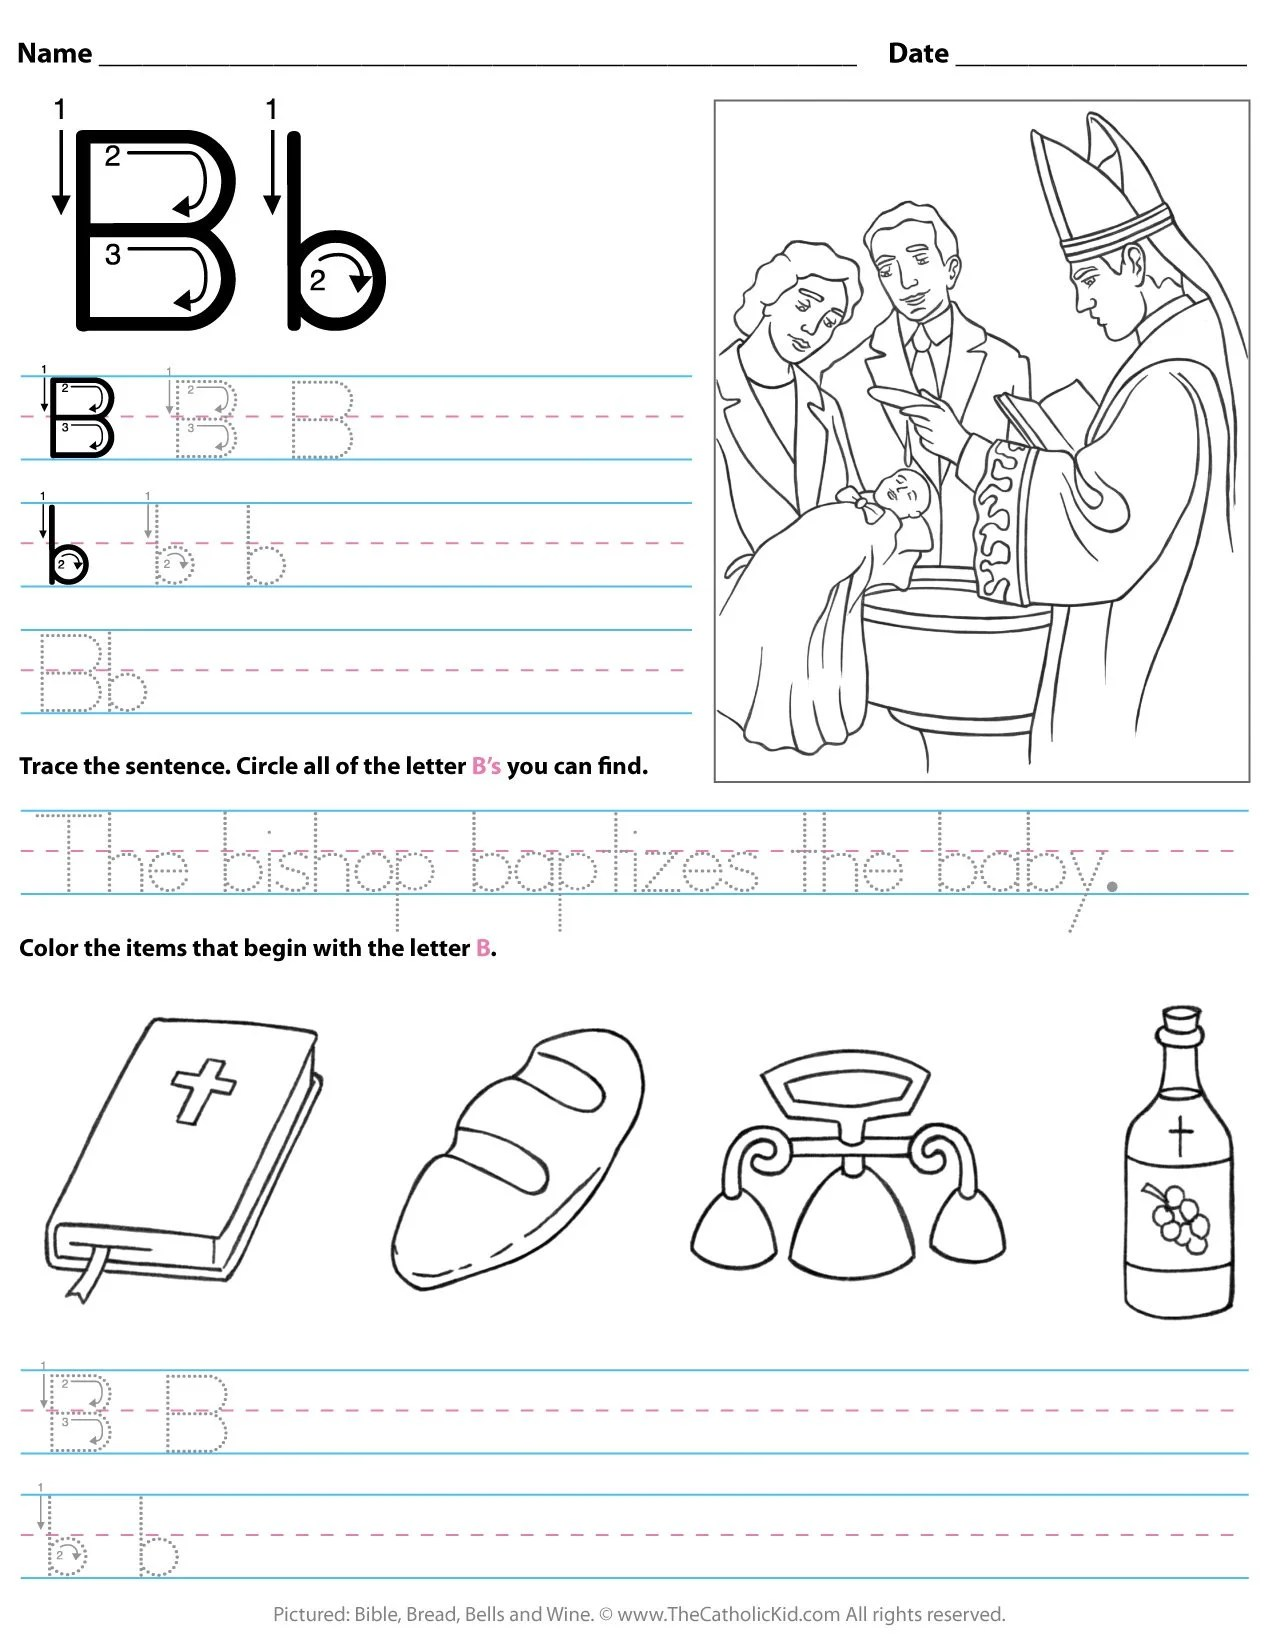 Preschool Worksheet Gallery Preschool Letter Worksheets B